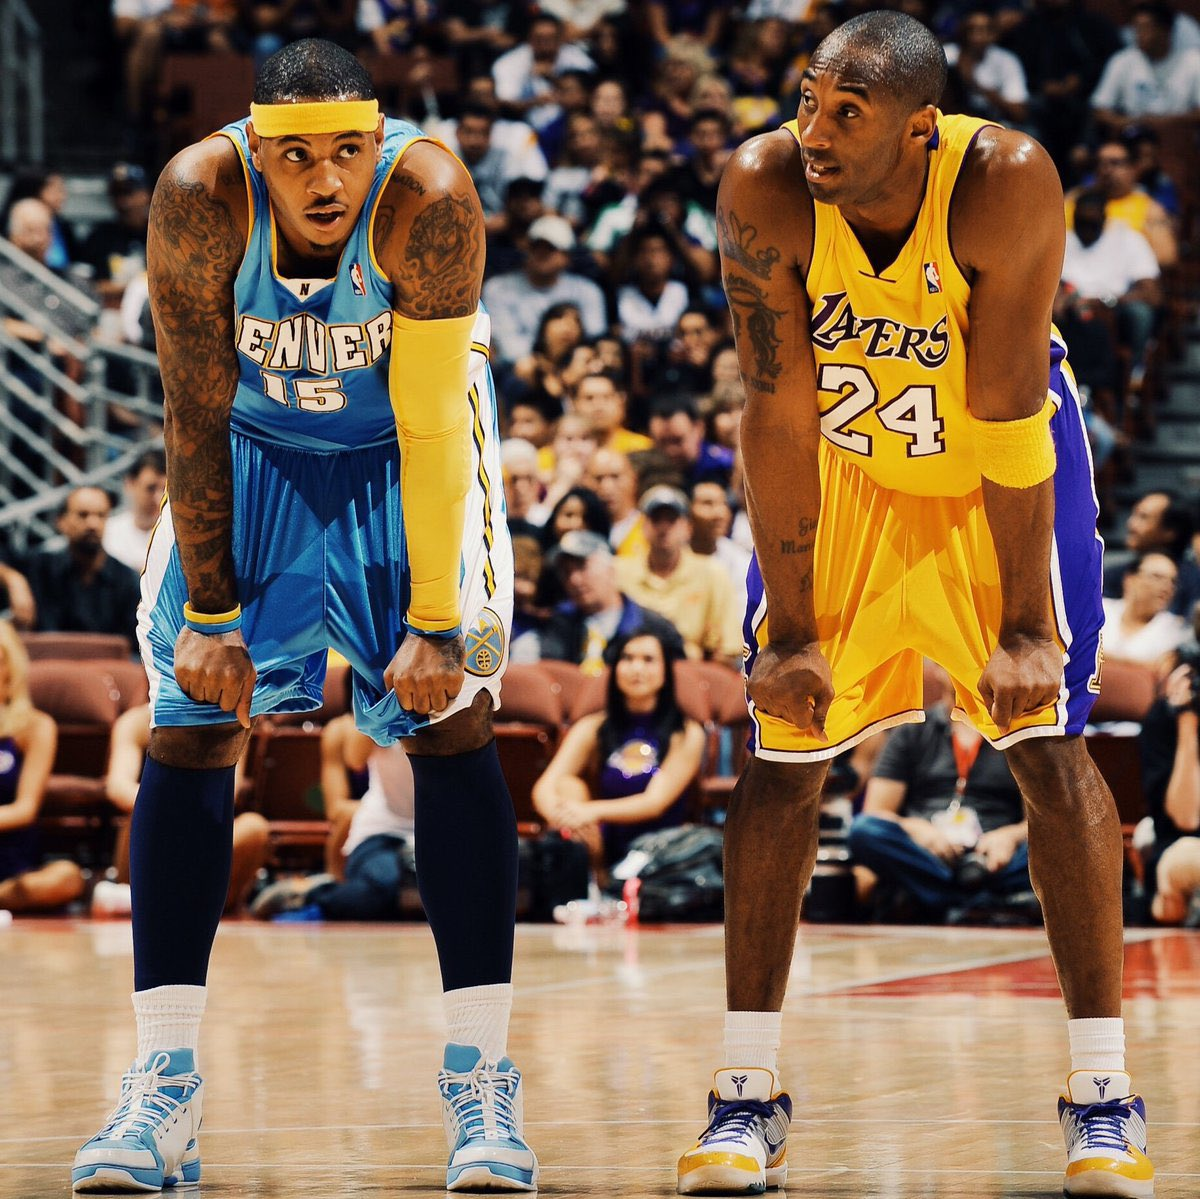 """You have to keep moving. You have to keep going. Put one foot in front of the other, smile and just keep on rolling.""    - Kobe Bean Bryant #loveyourself #LongLiveKobeGigi #stayme7o"